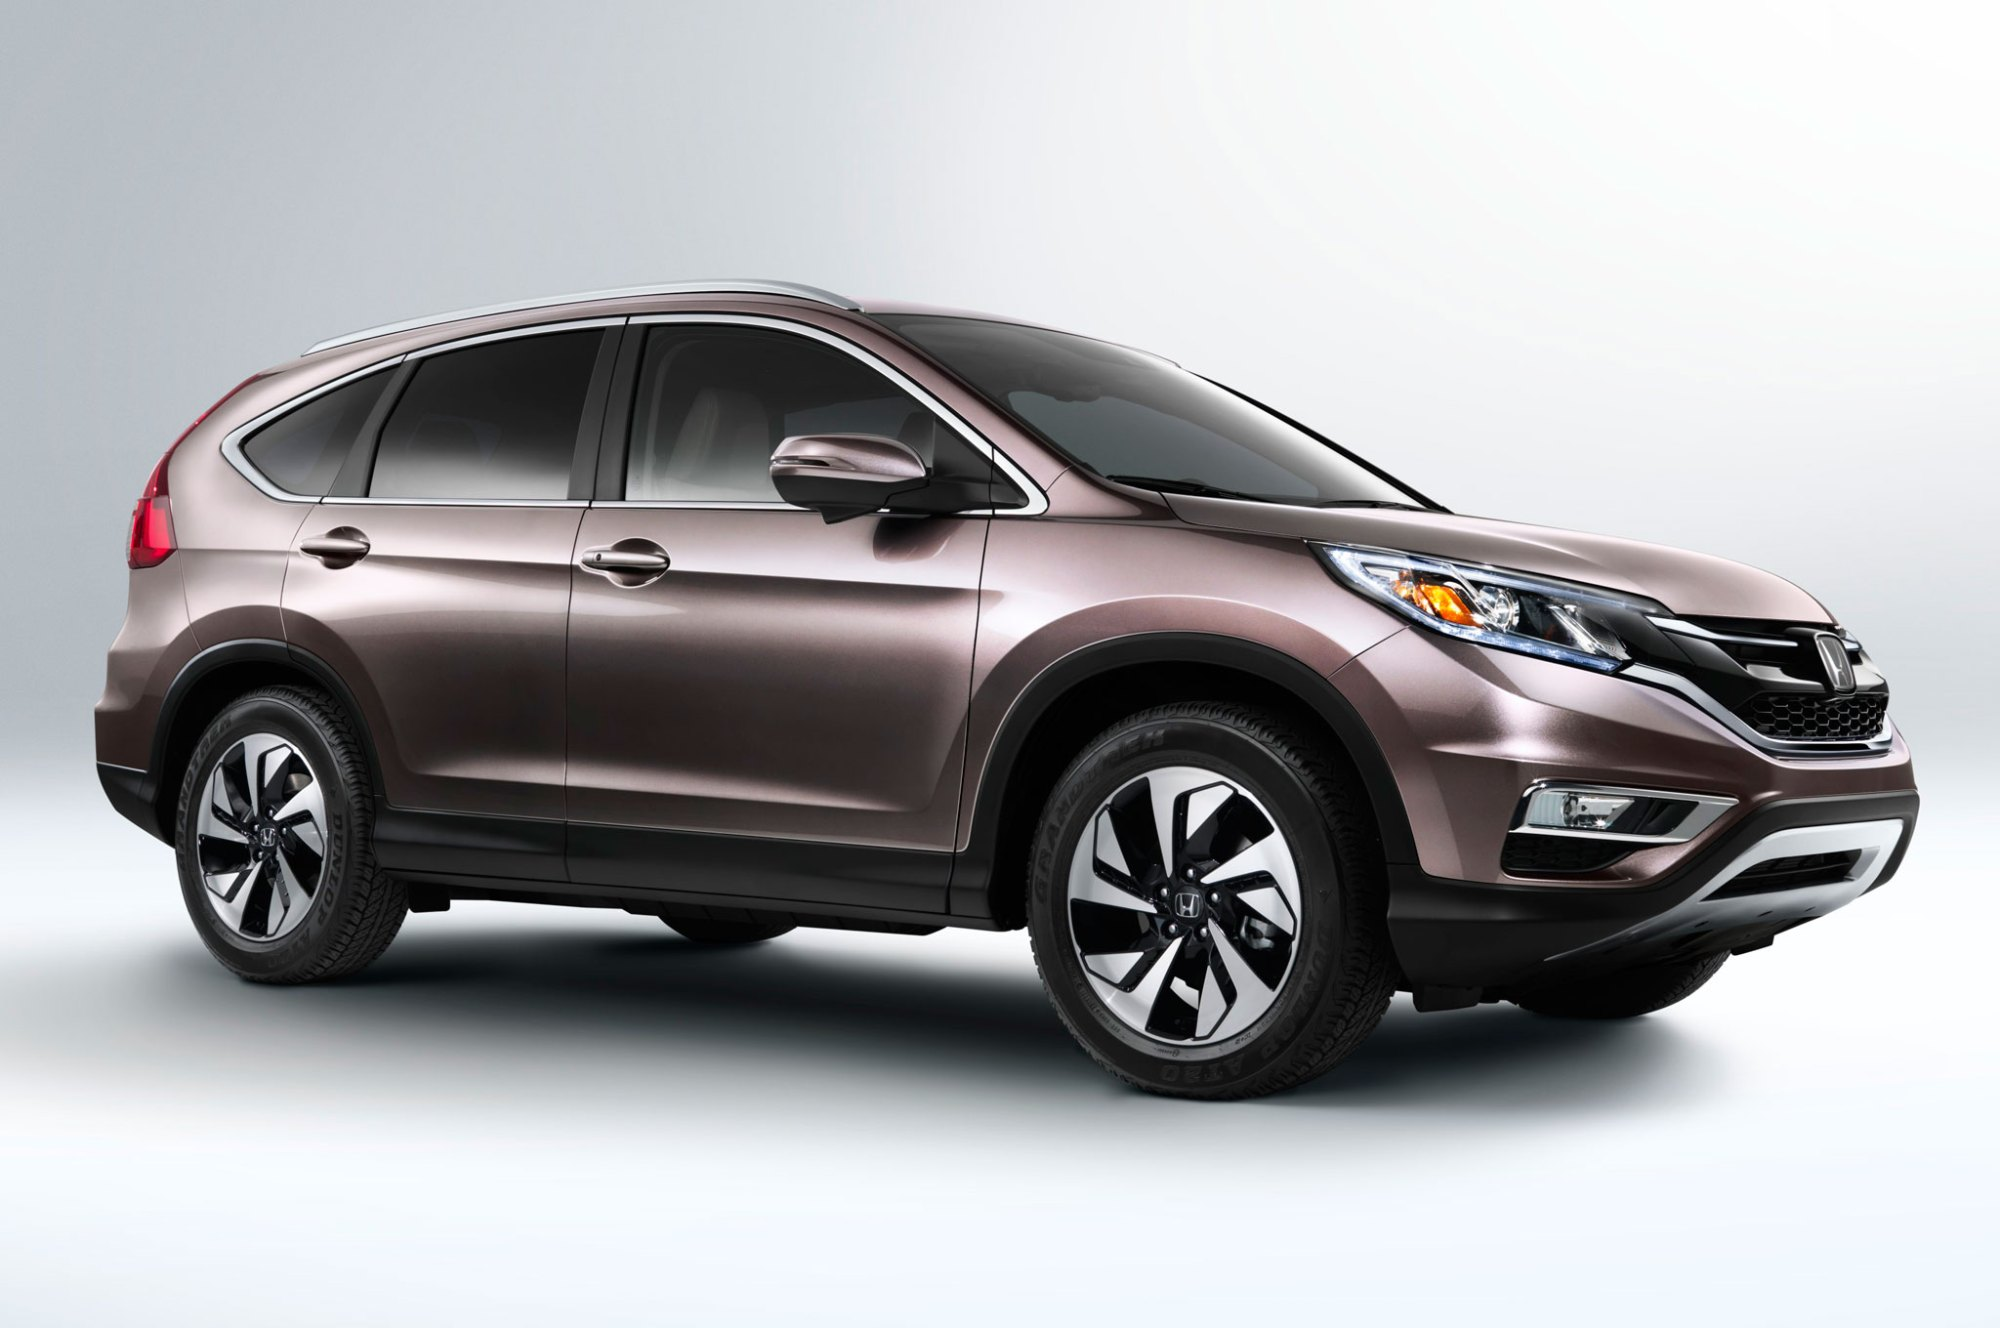 hight resolution of moreover 2015 honda cr v front three quarter in studio 3 further furthermore as well suzuki 2000 jeep wrangler radio wiring diagram